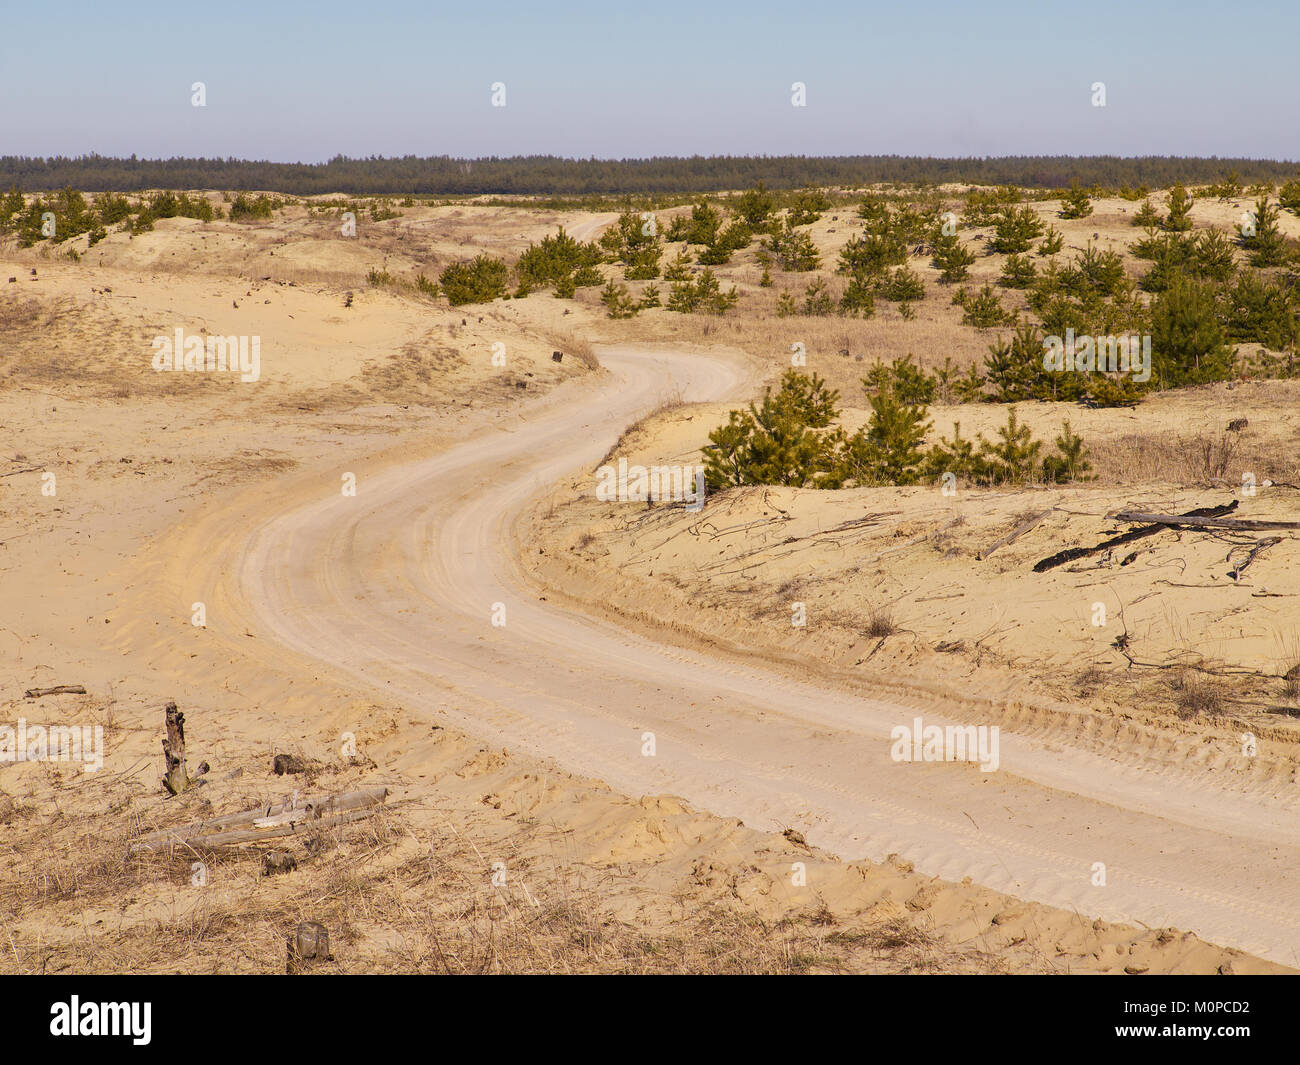 Dirt road between sand hills with remains of small spruces with forest on the background - Stock Image